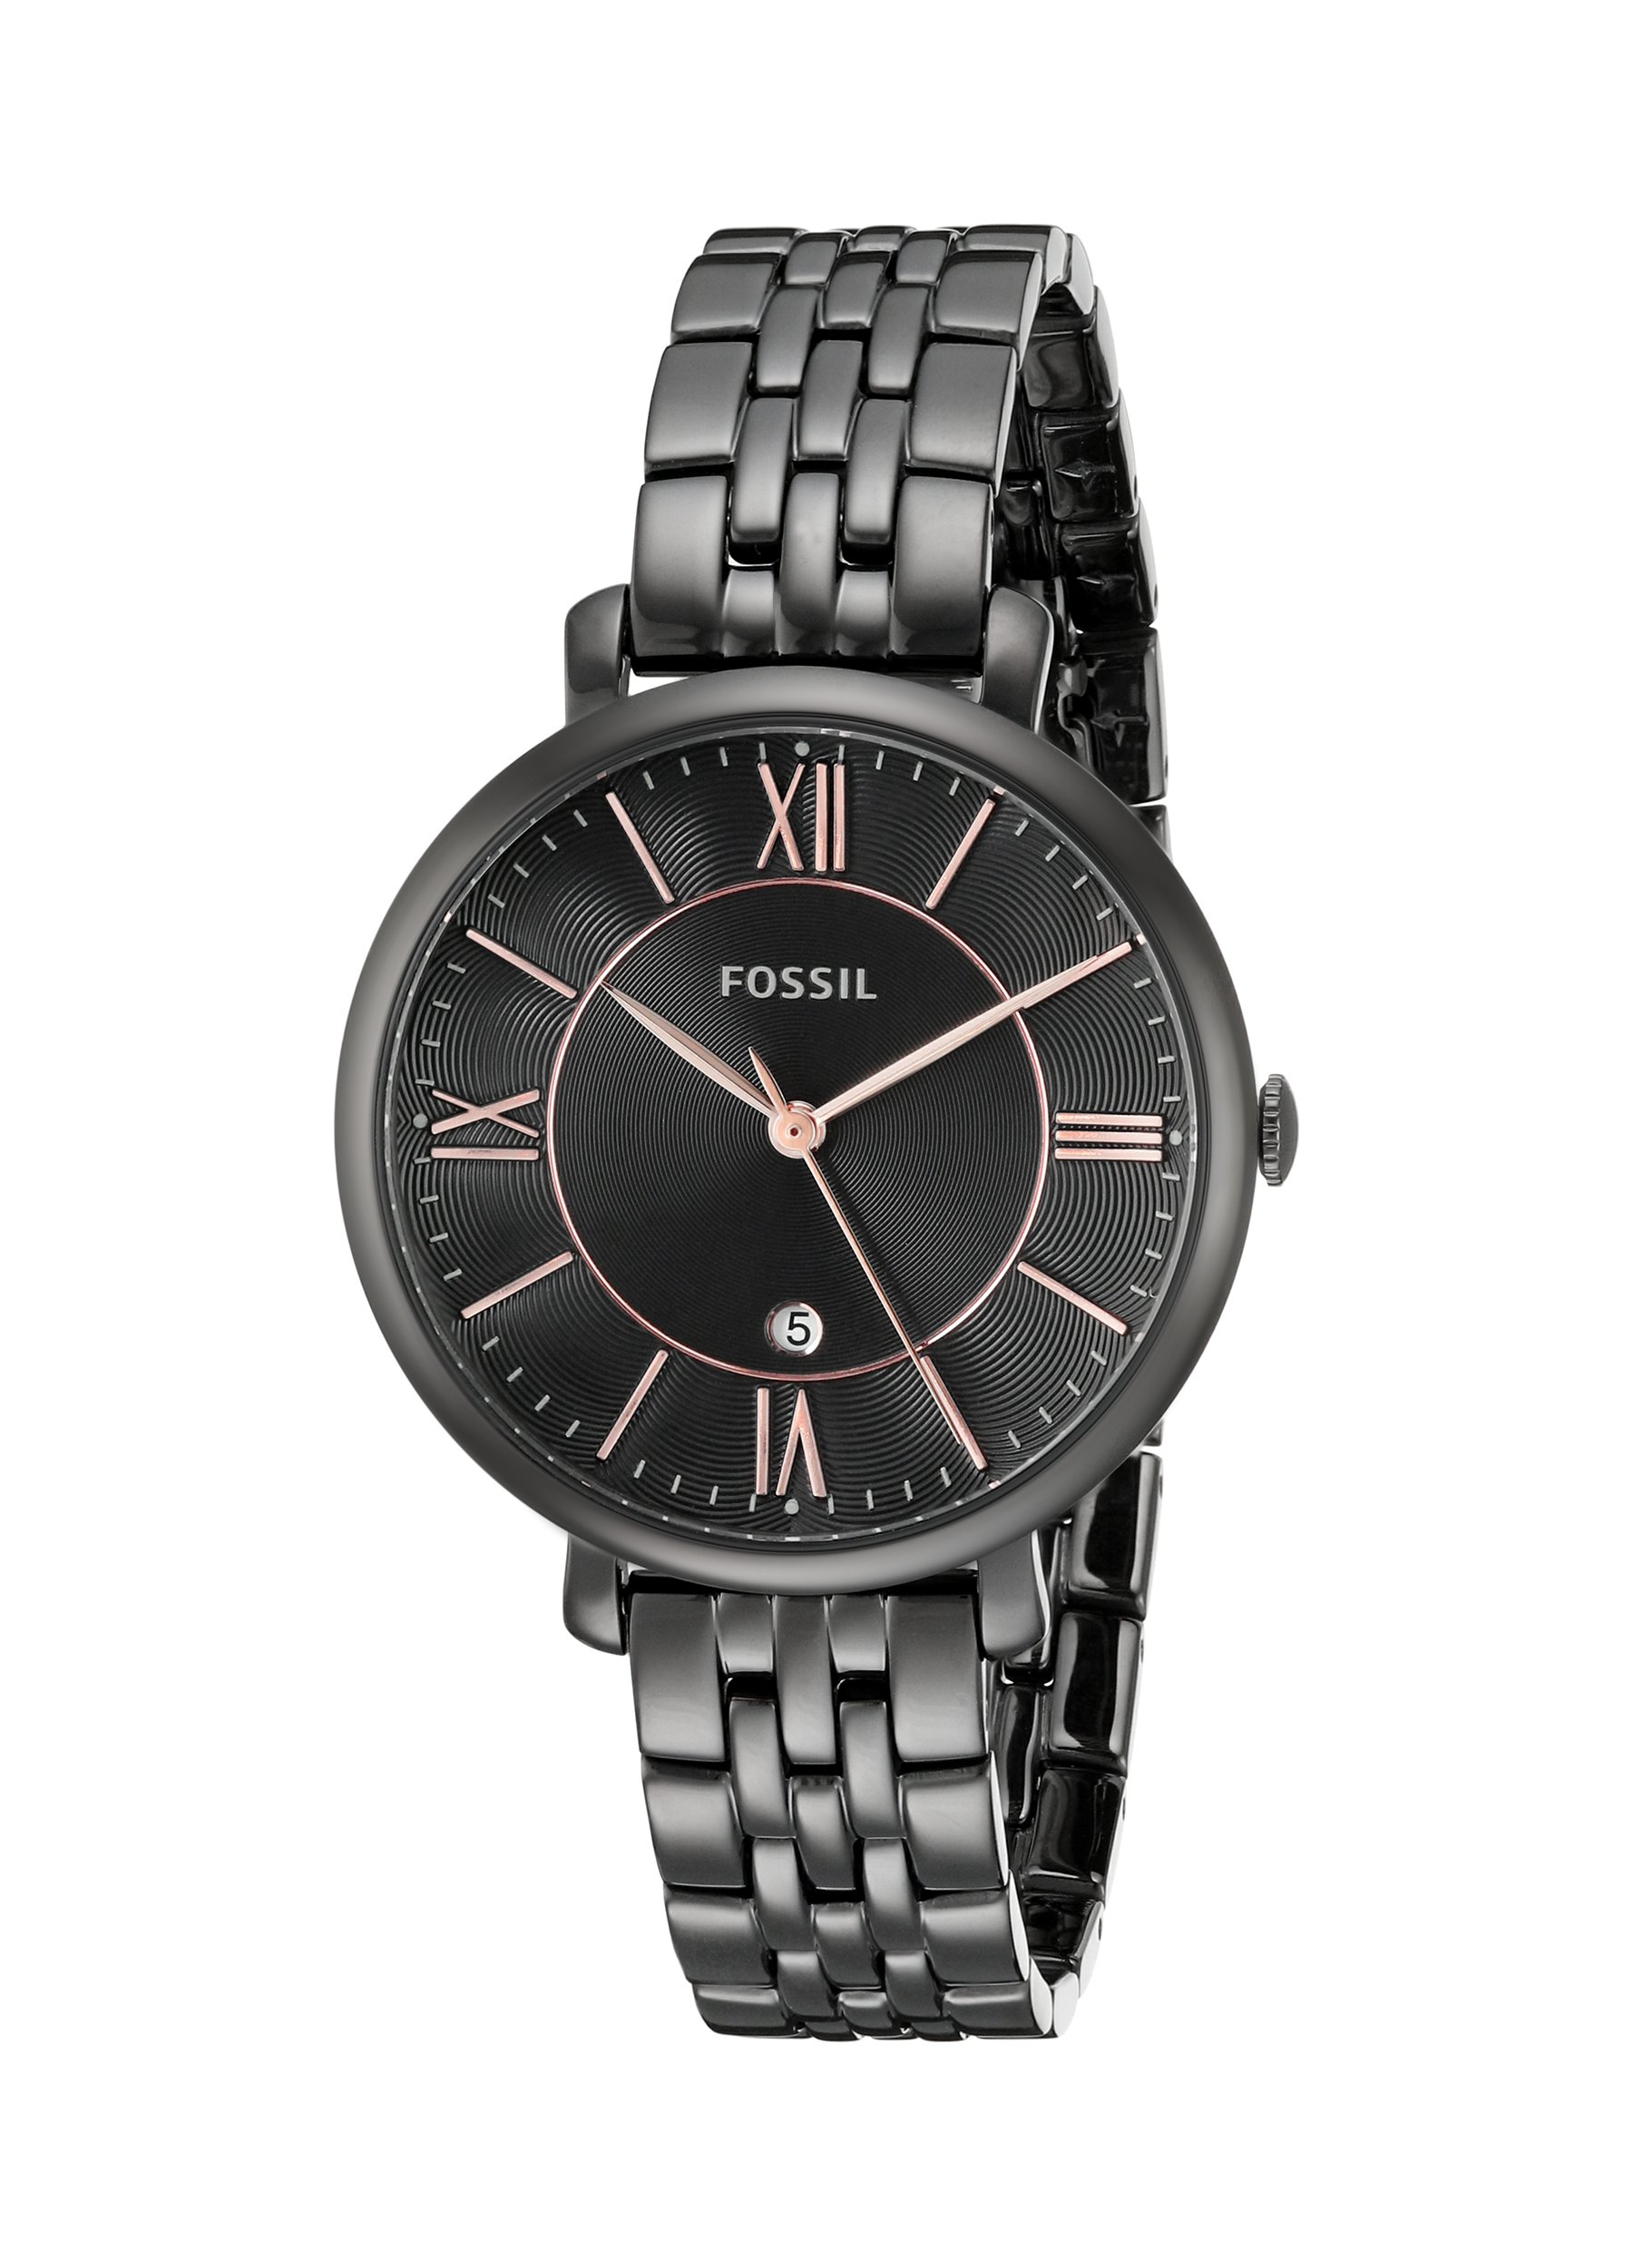 Fossil Women's ES3614 Jacqueline Black Stainless Steel Watch by Fossil